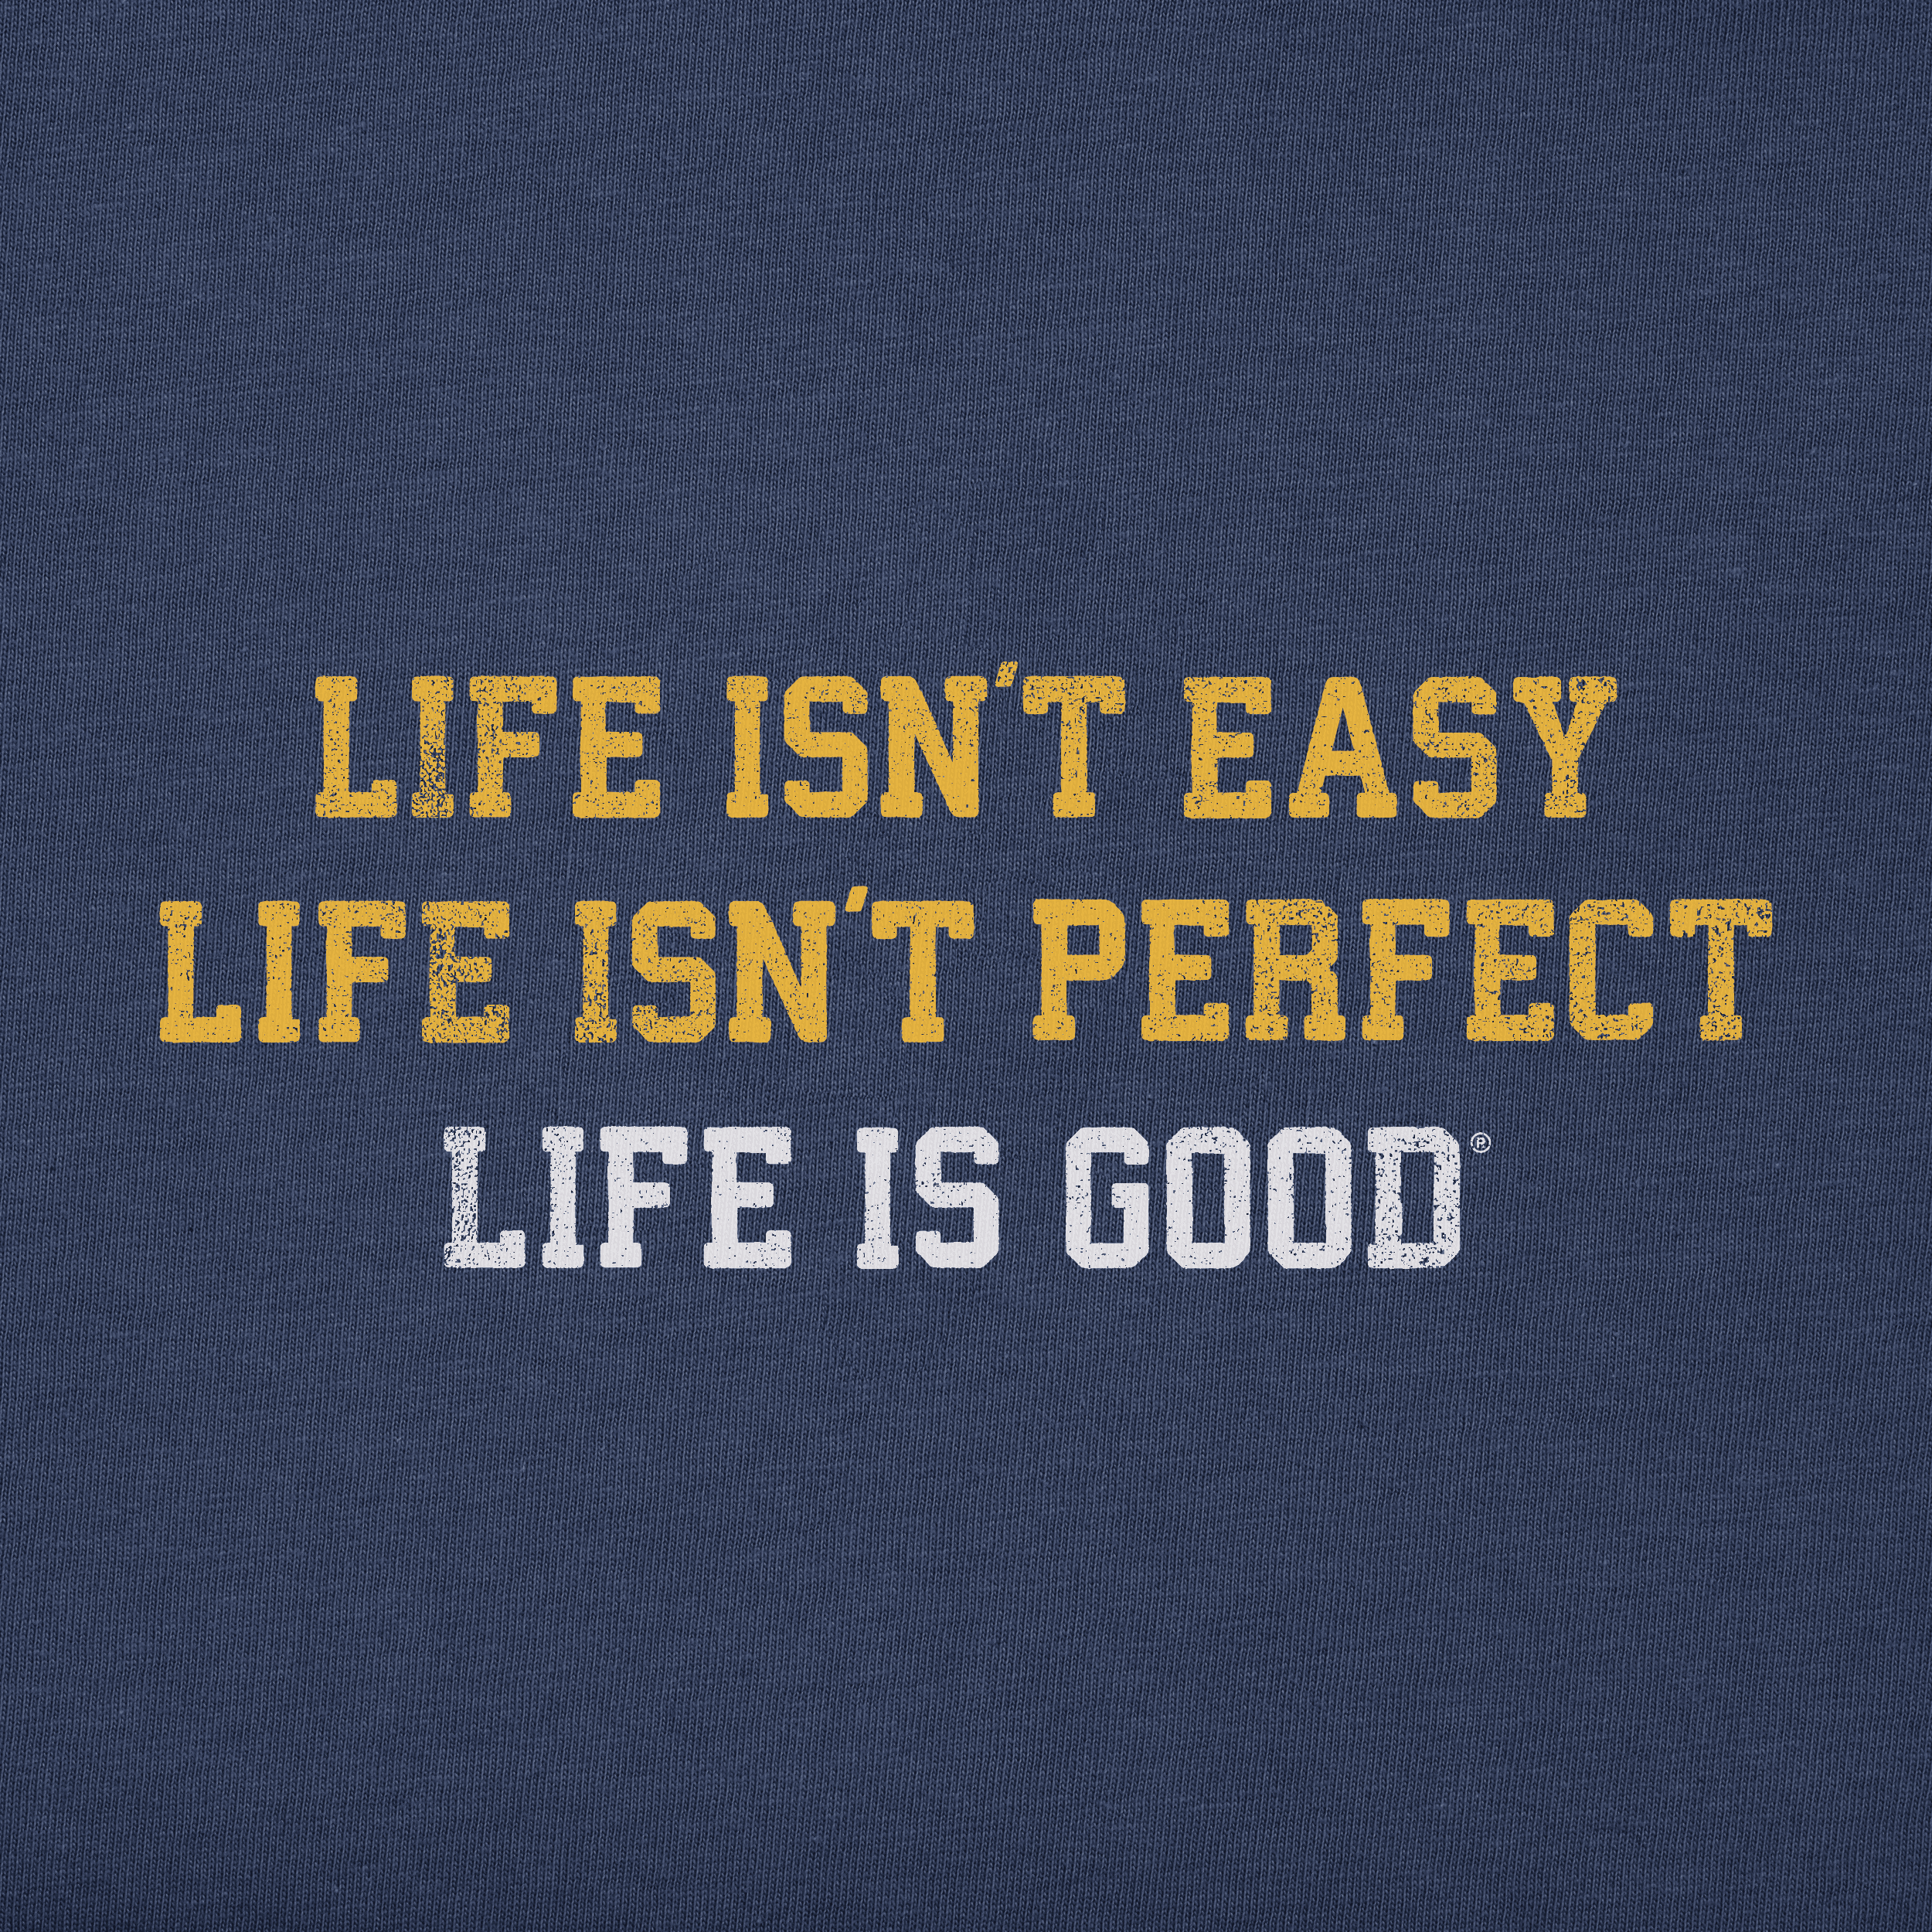 life isn't easy, life isn't perfect, life is good